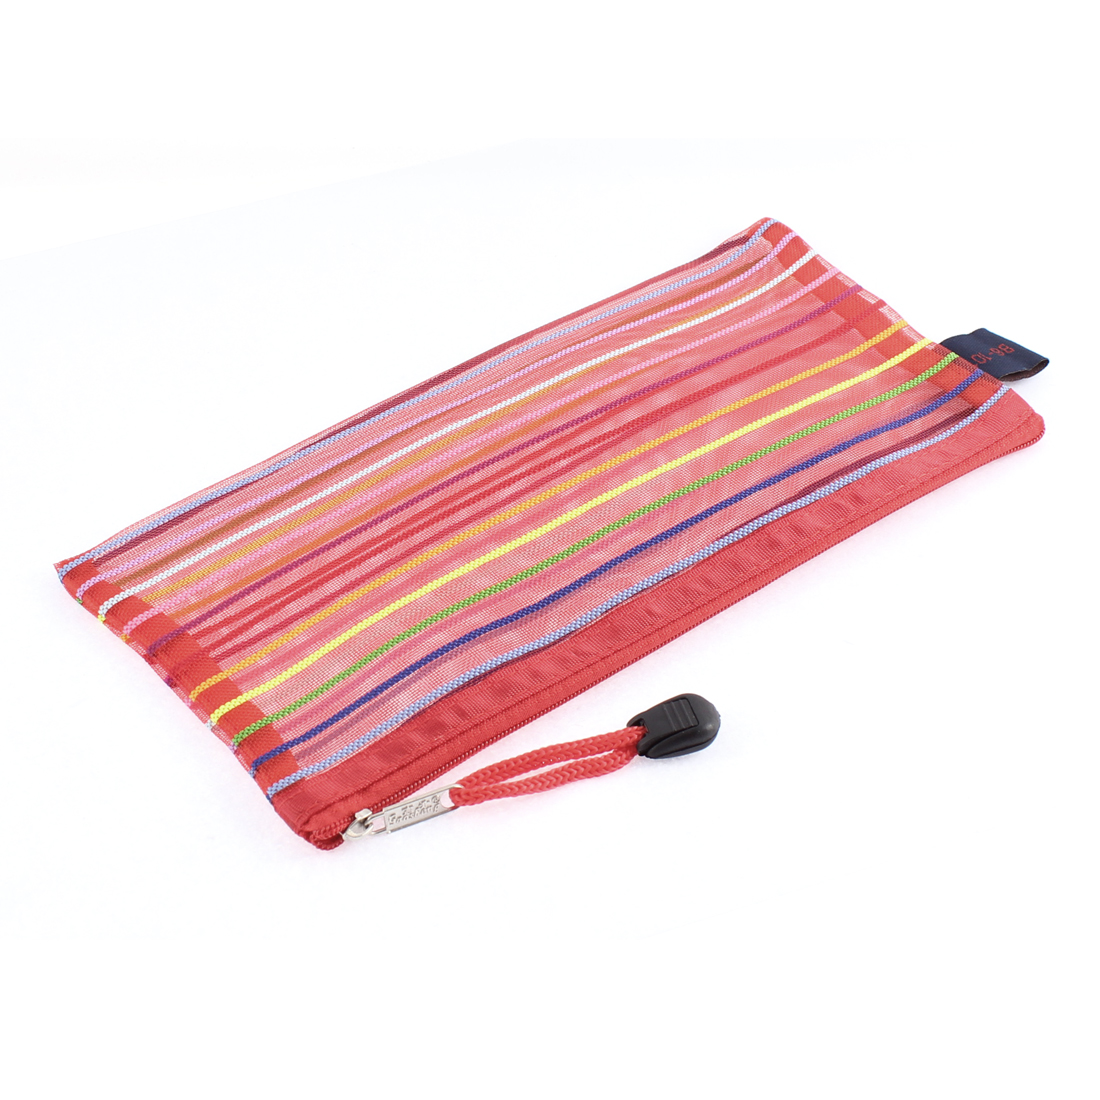 Meshy Style Stripes Zip Up B6 Paper Document File Pen Bag Holder Red